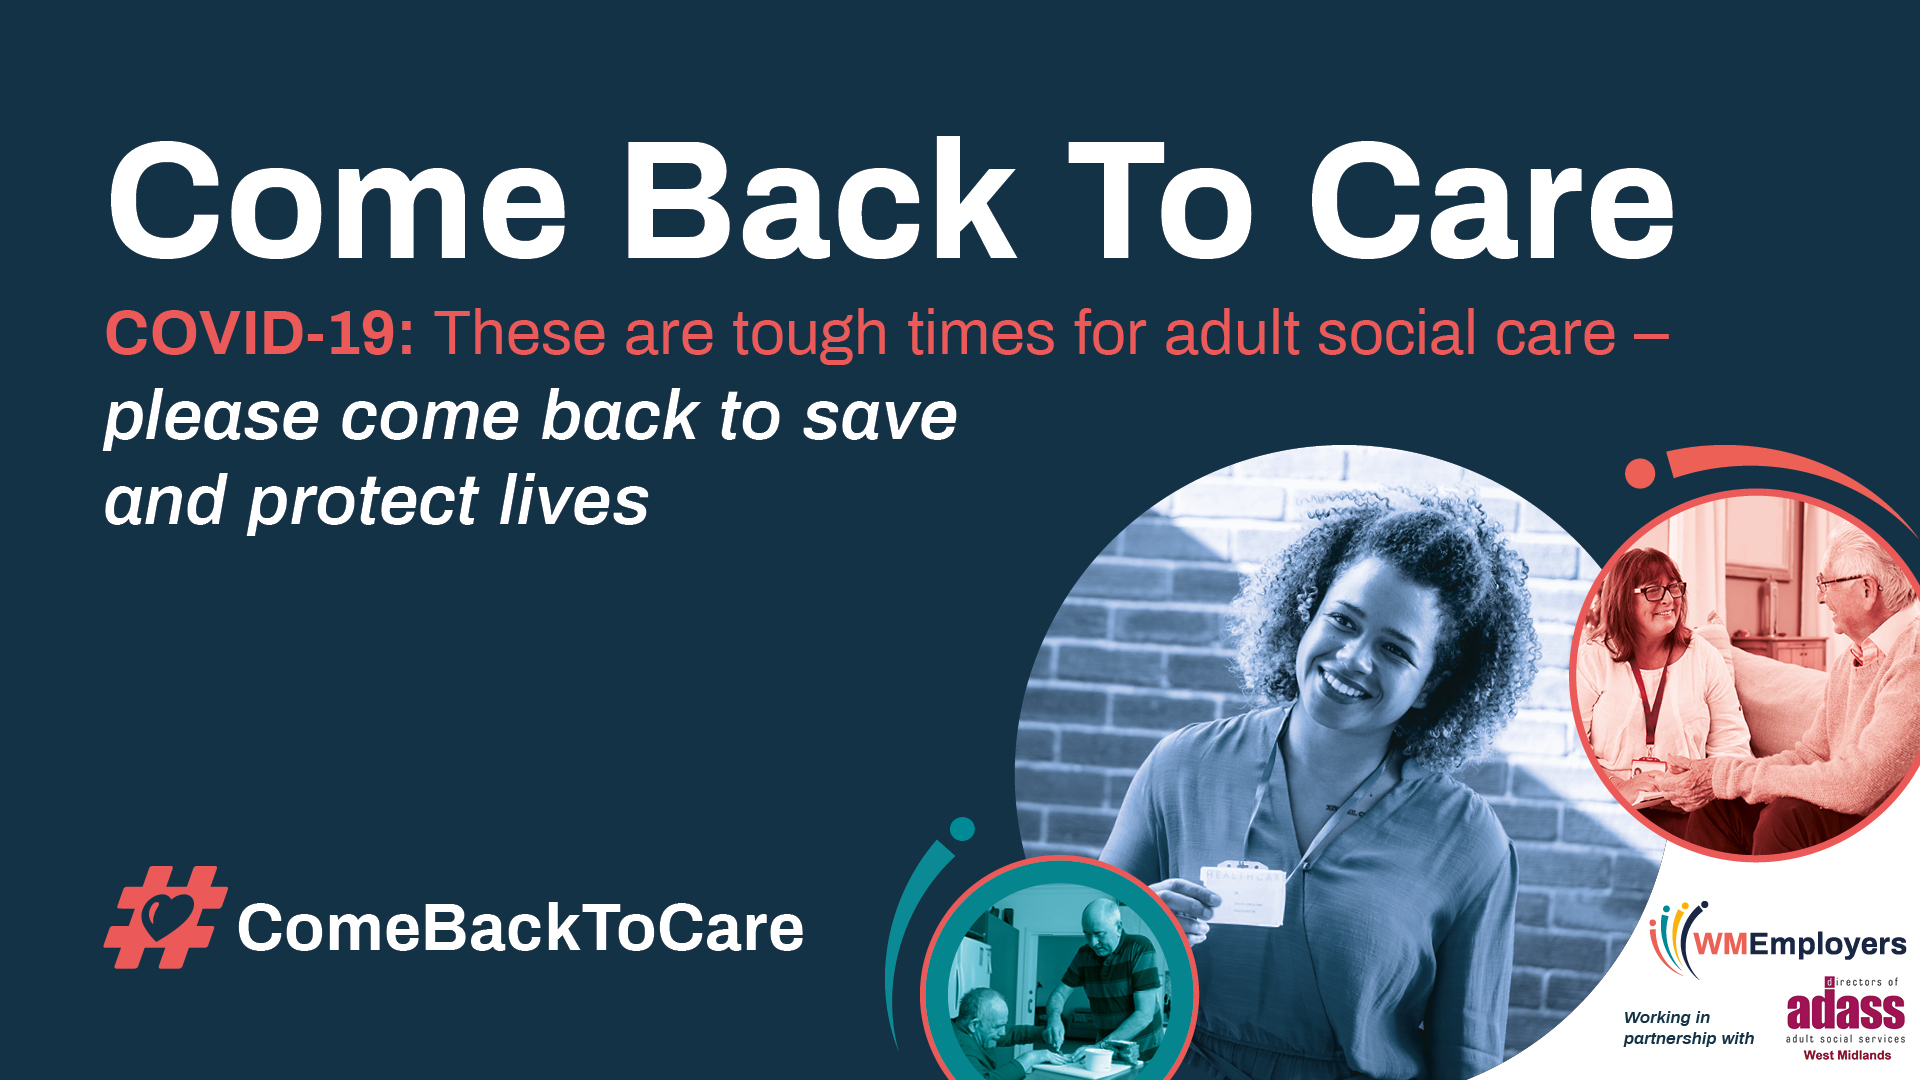 Come Back to Care